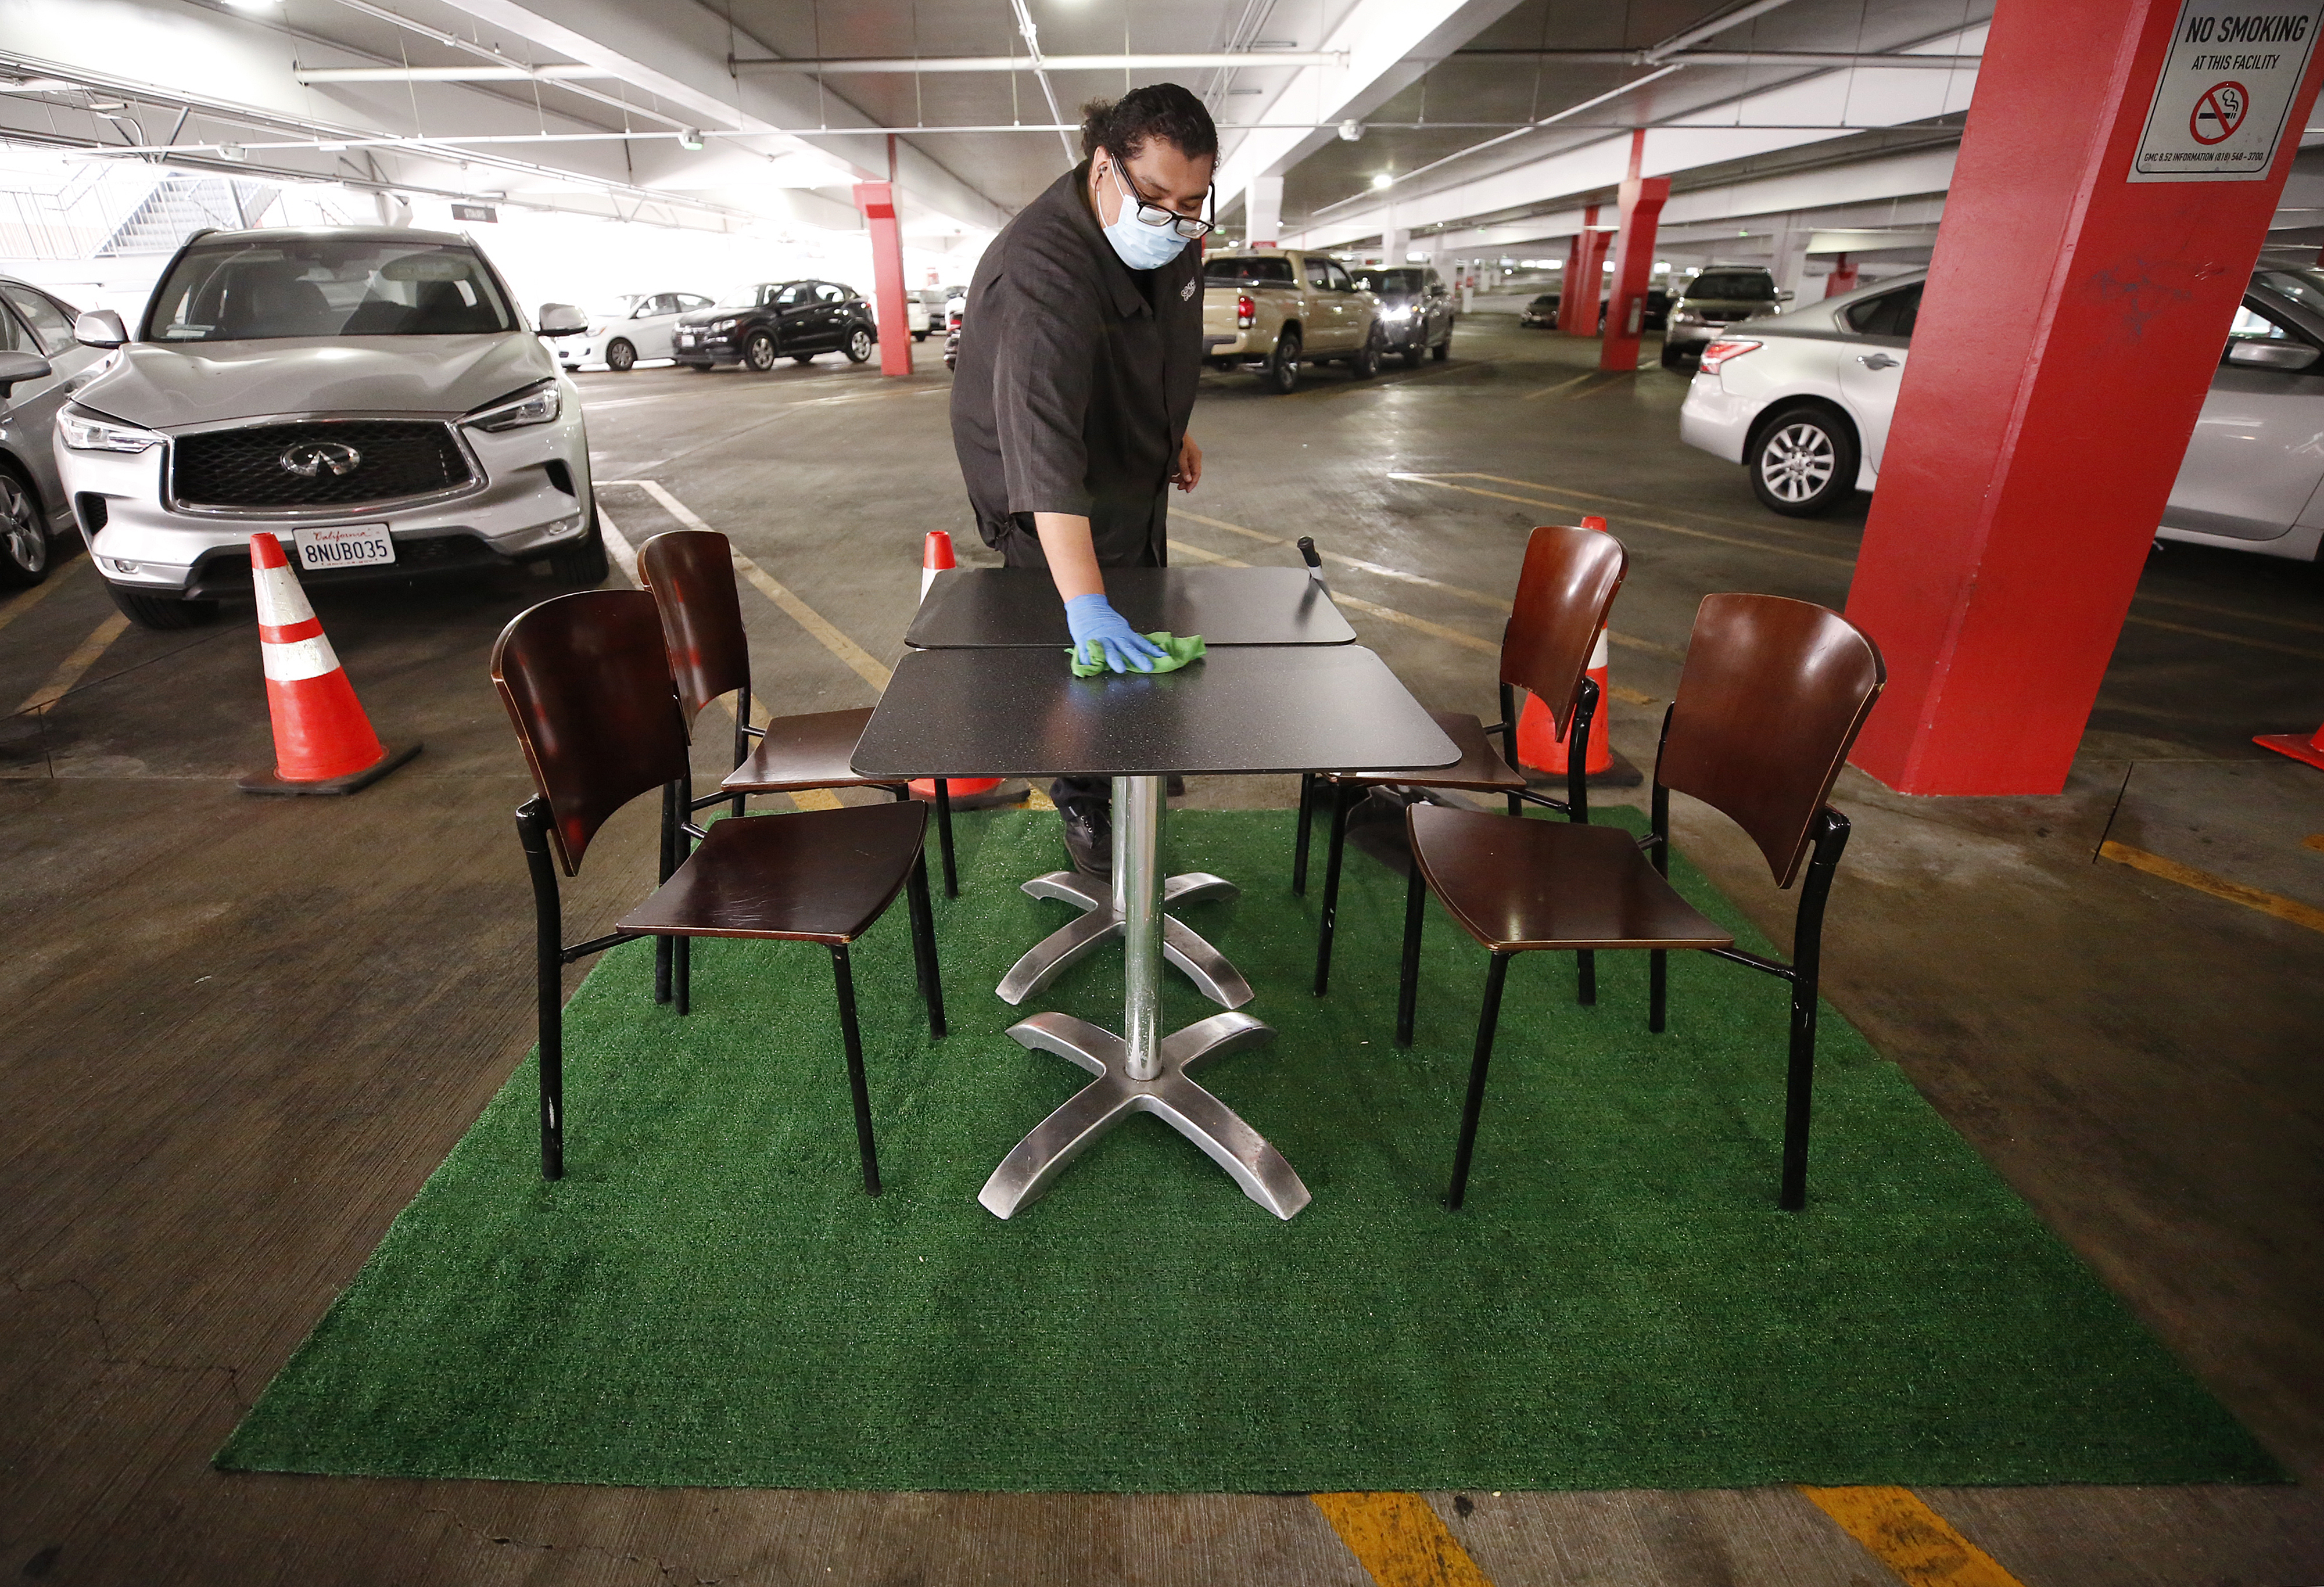 Glendale Galleria in a creative effort has set up tables and chairs in the Galleria parking structure to create an outdoor dining area.